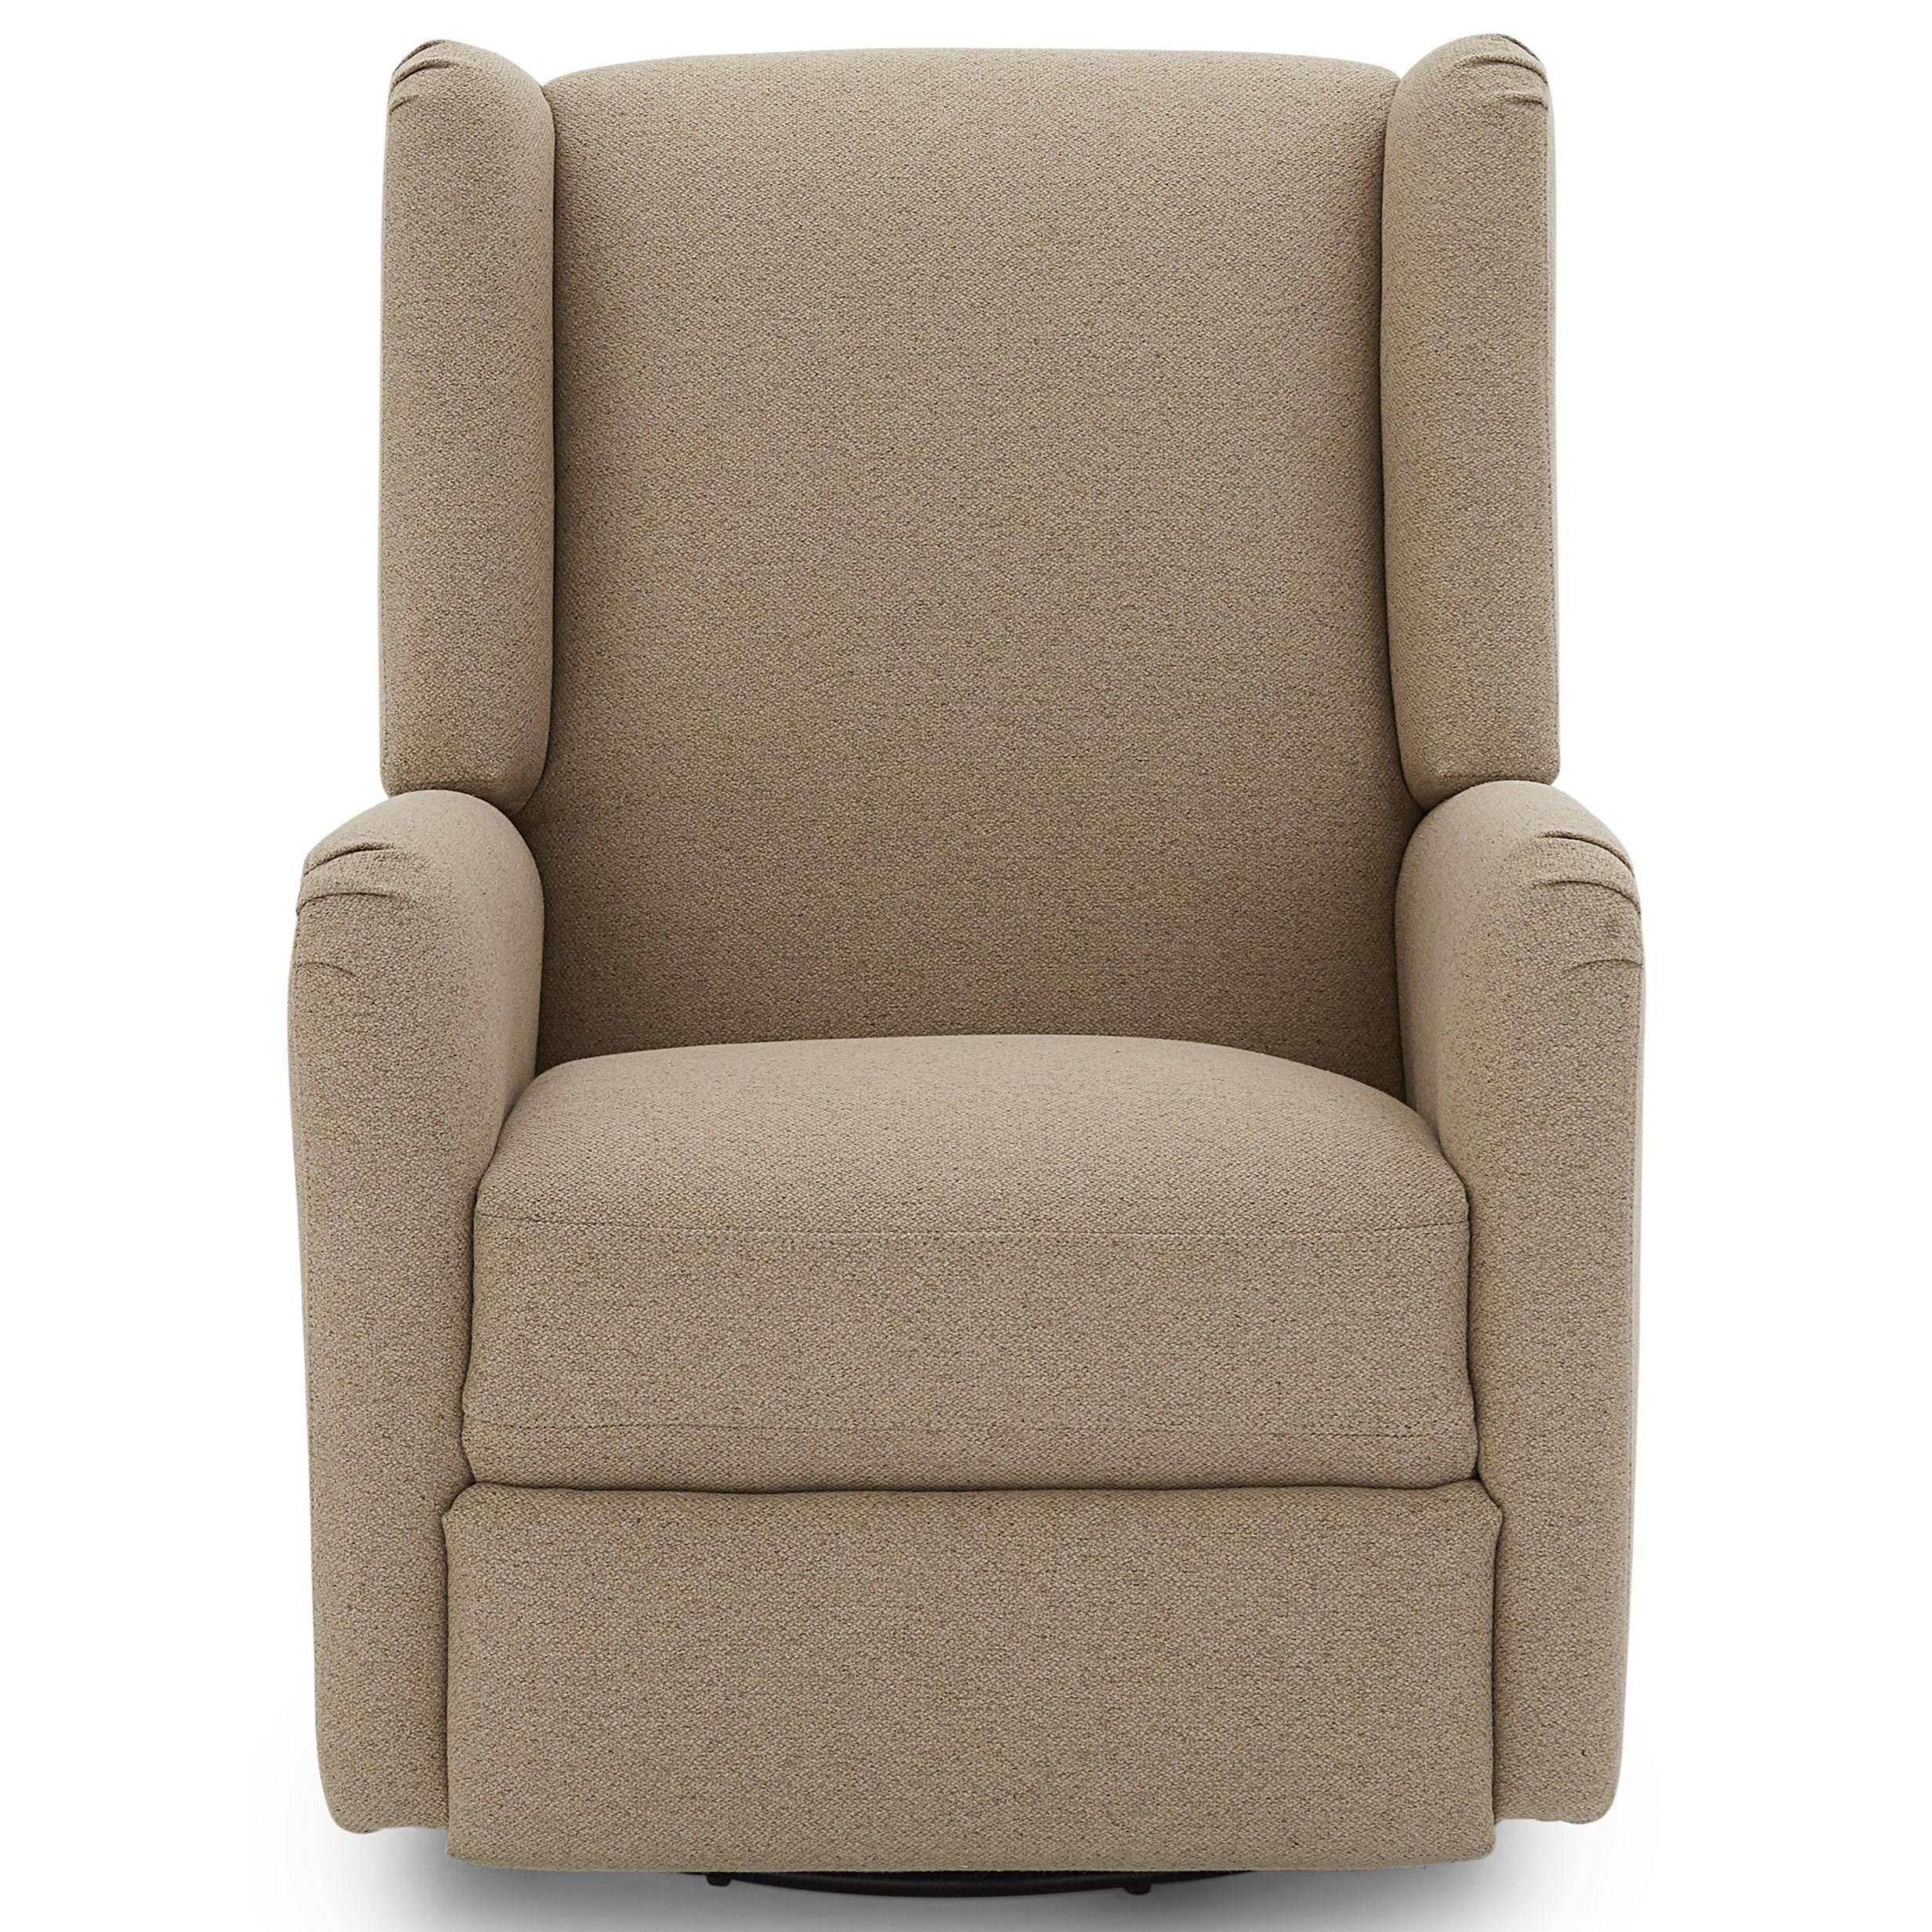 Shaylyn Swivel Glider Recliner by Best Home Furnishings at Baer's Furniture